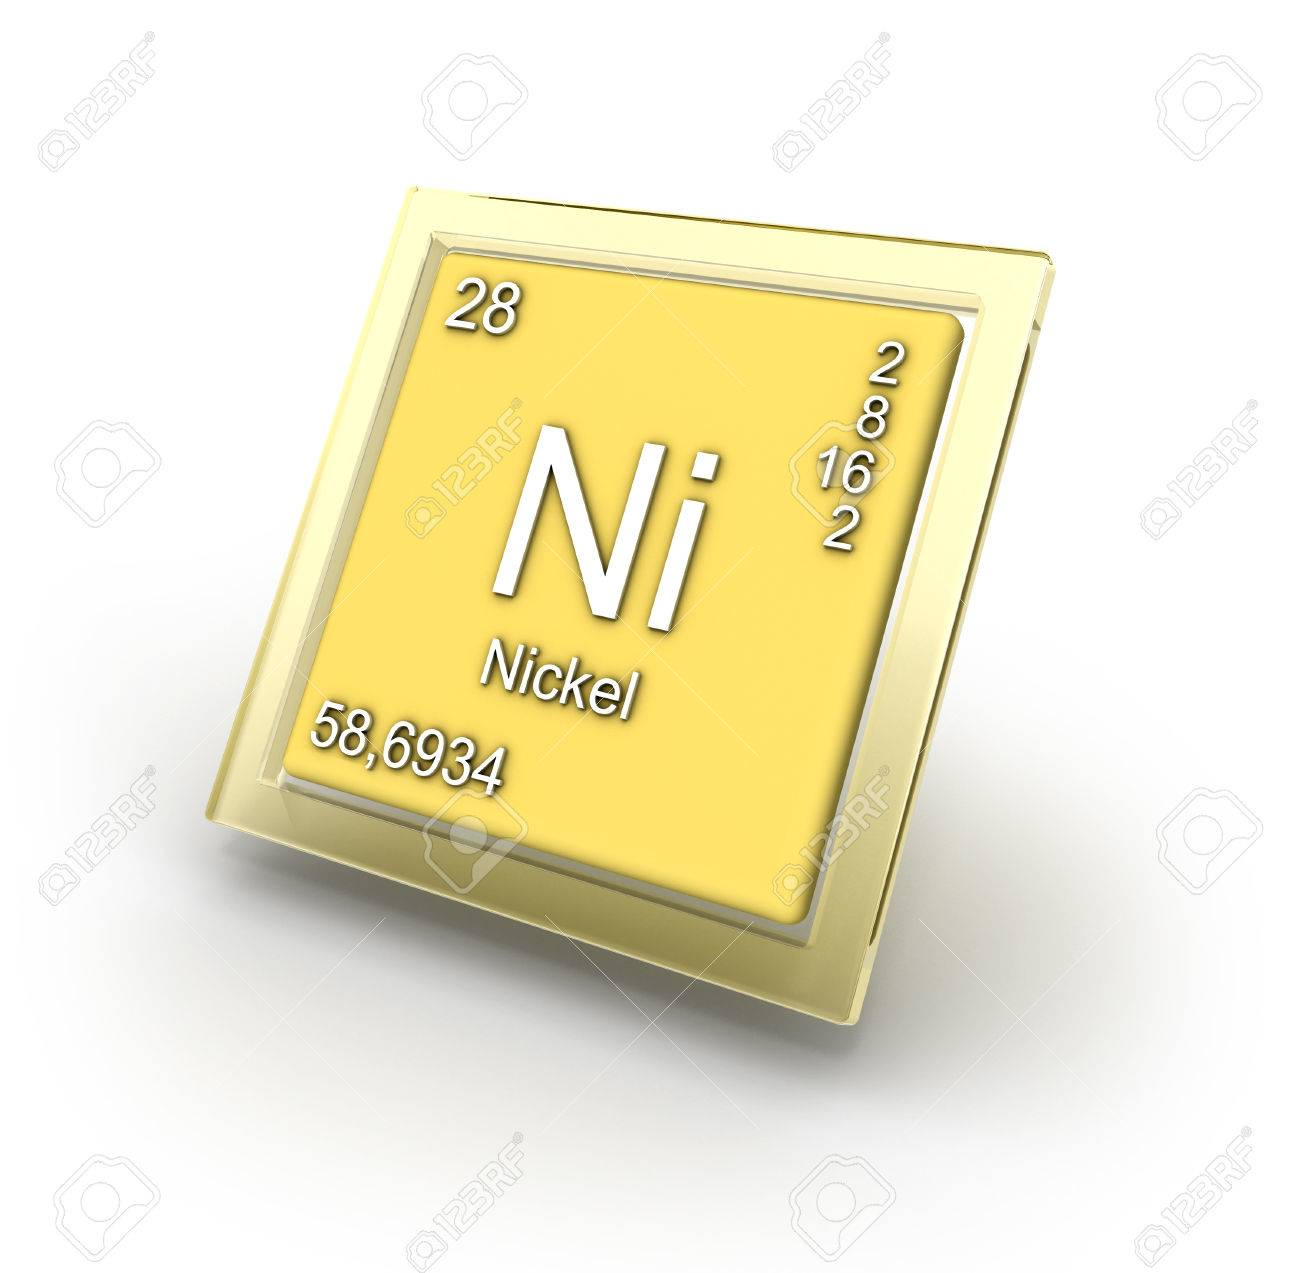 Nickel chemical element sign part of collection stock photo picture nickel chemical element sign part of collection stock photo 28293487 buycottarizona Images